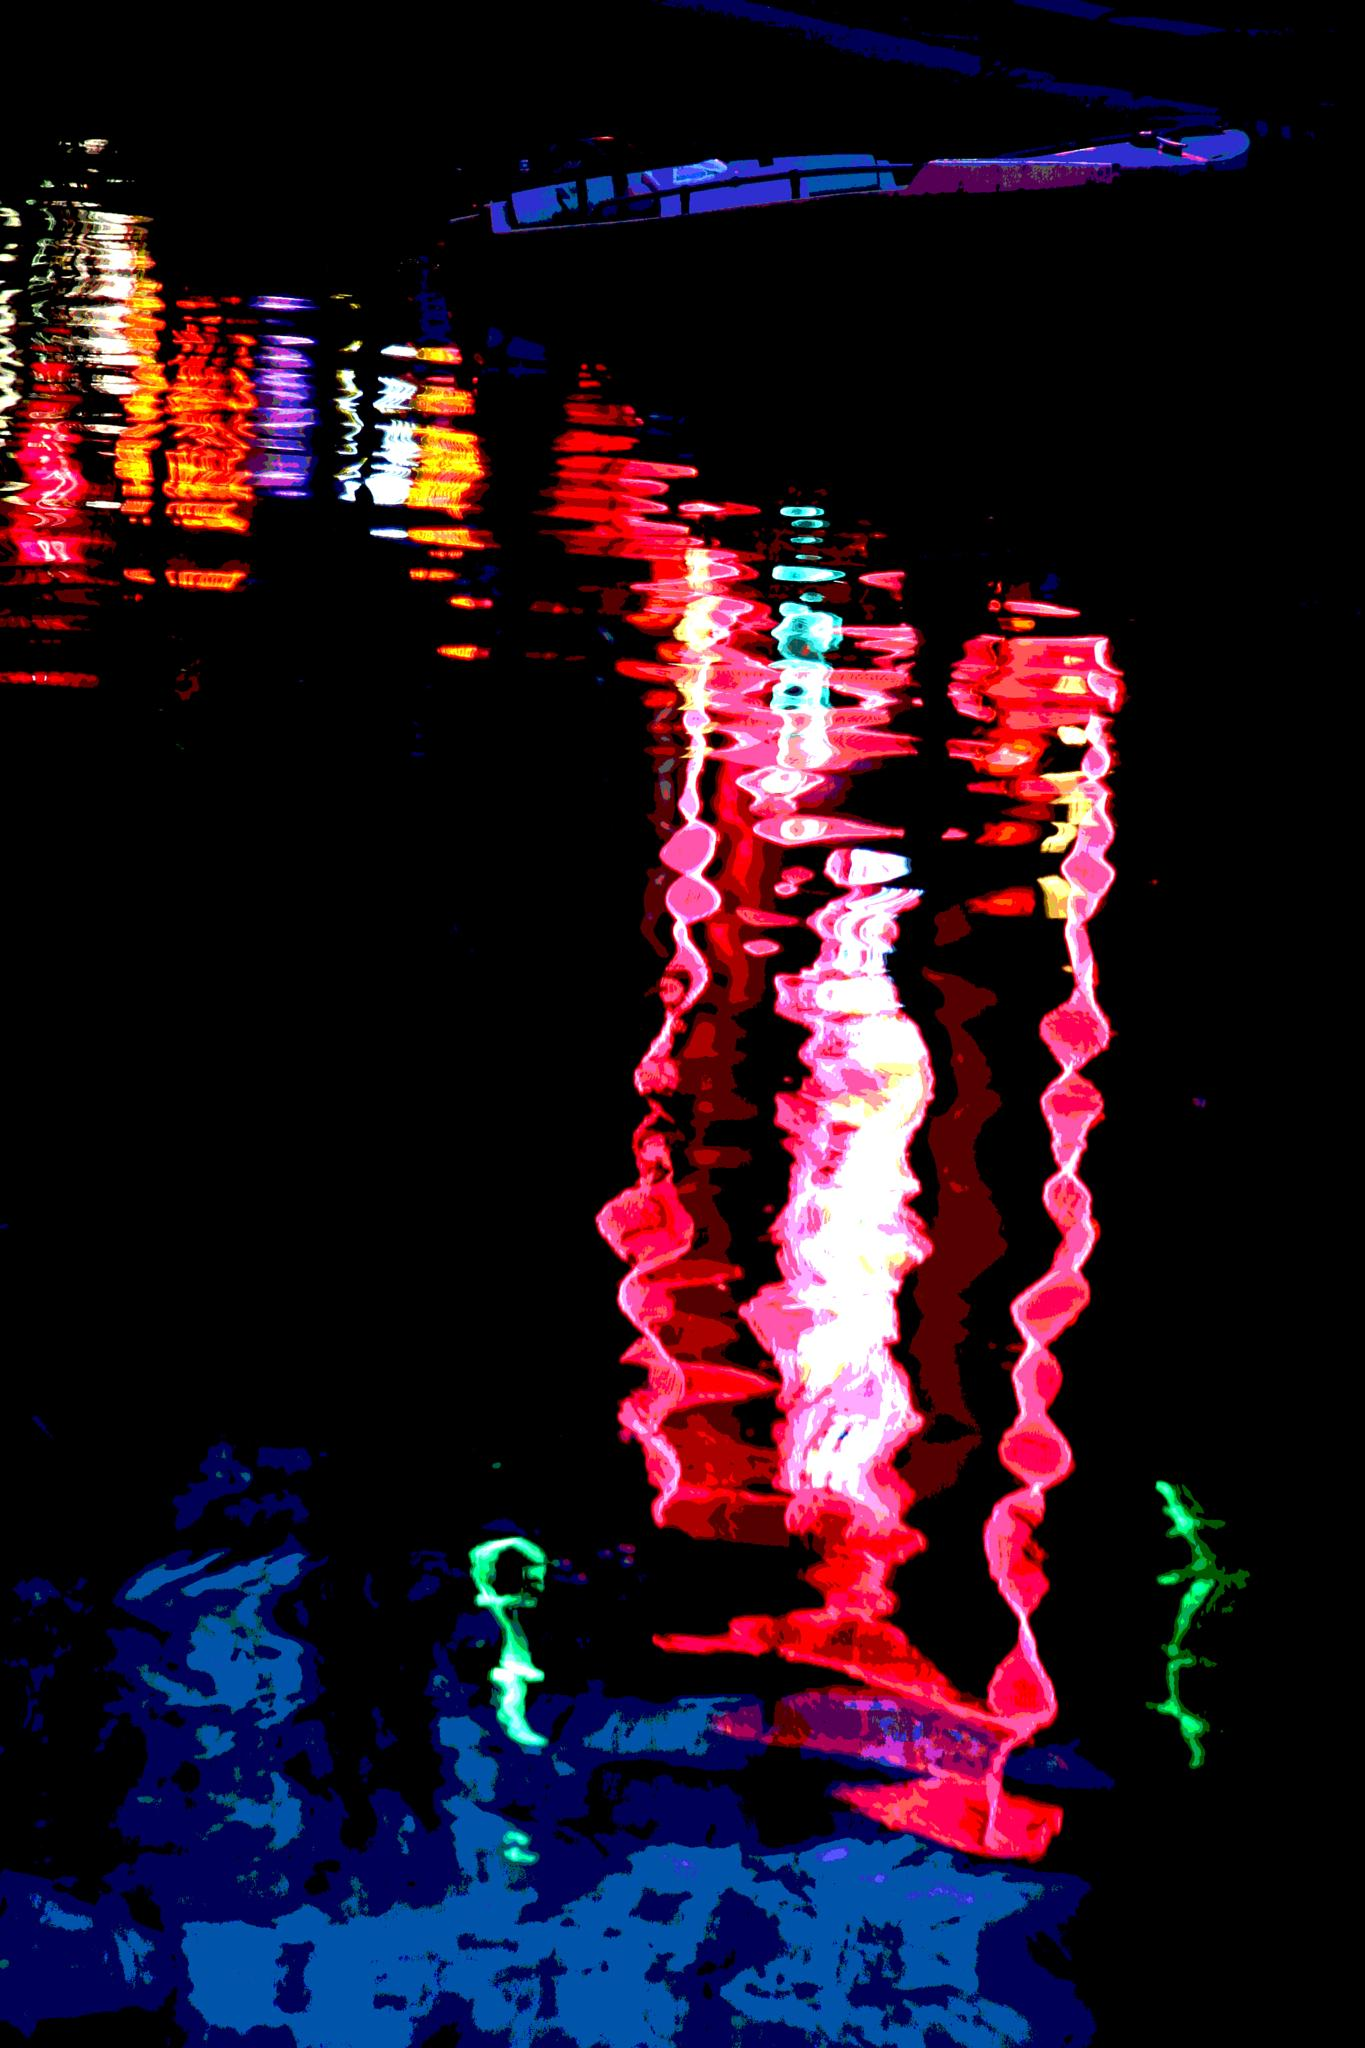 Reflections ( Redlight District, Amsterdam) by WhiteArtPhotography